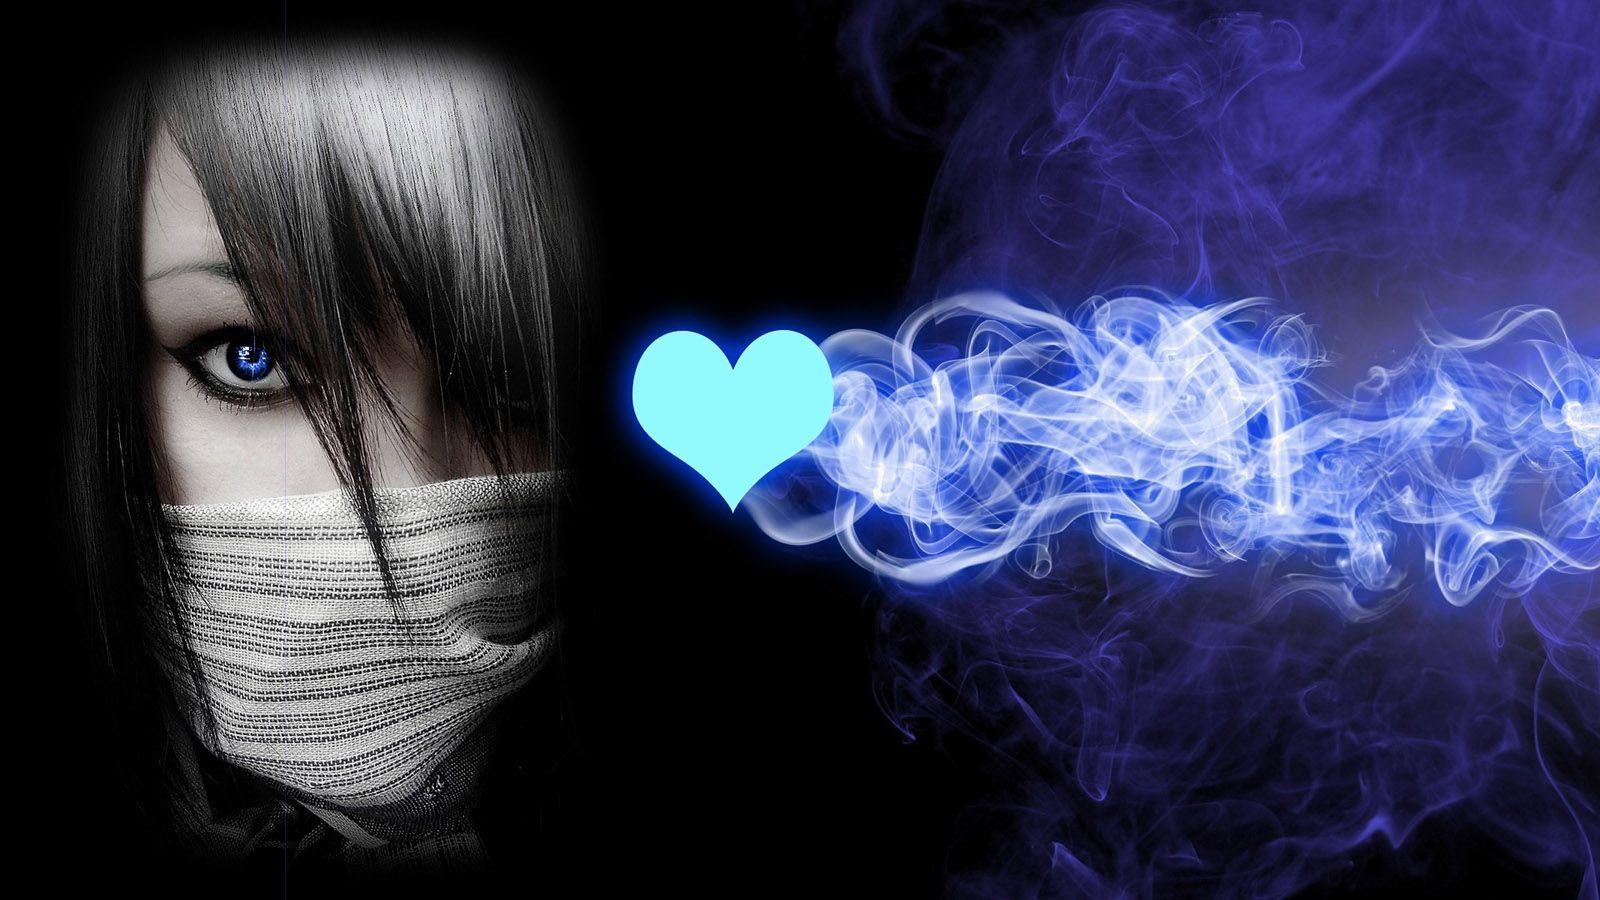 3d Love Boy And Girl Wallpaper : Emo Love Wallpapers 2016 - Wallpaper cave